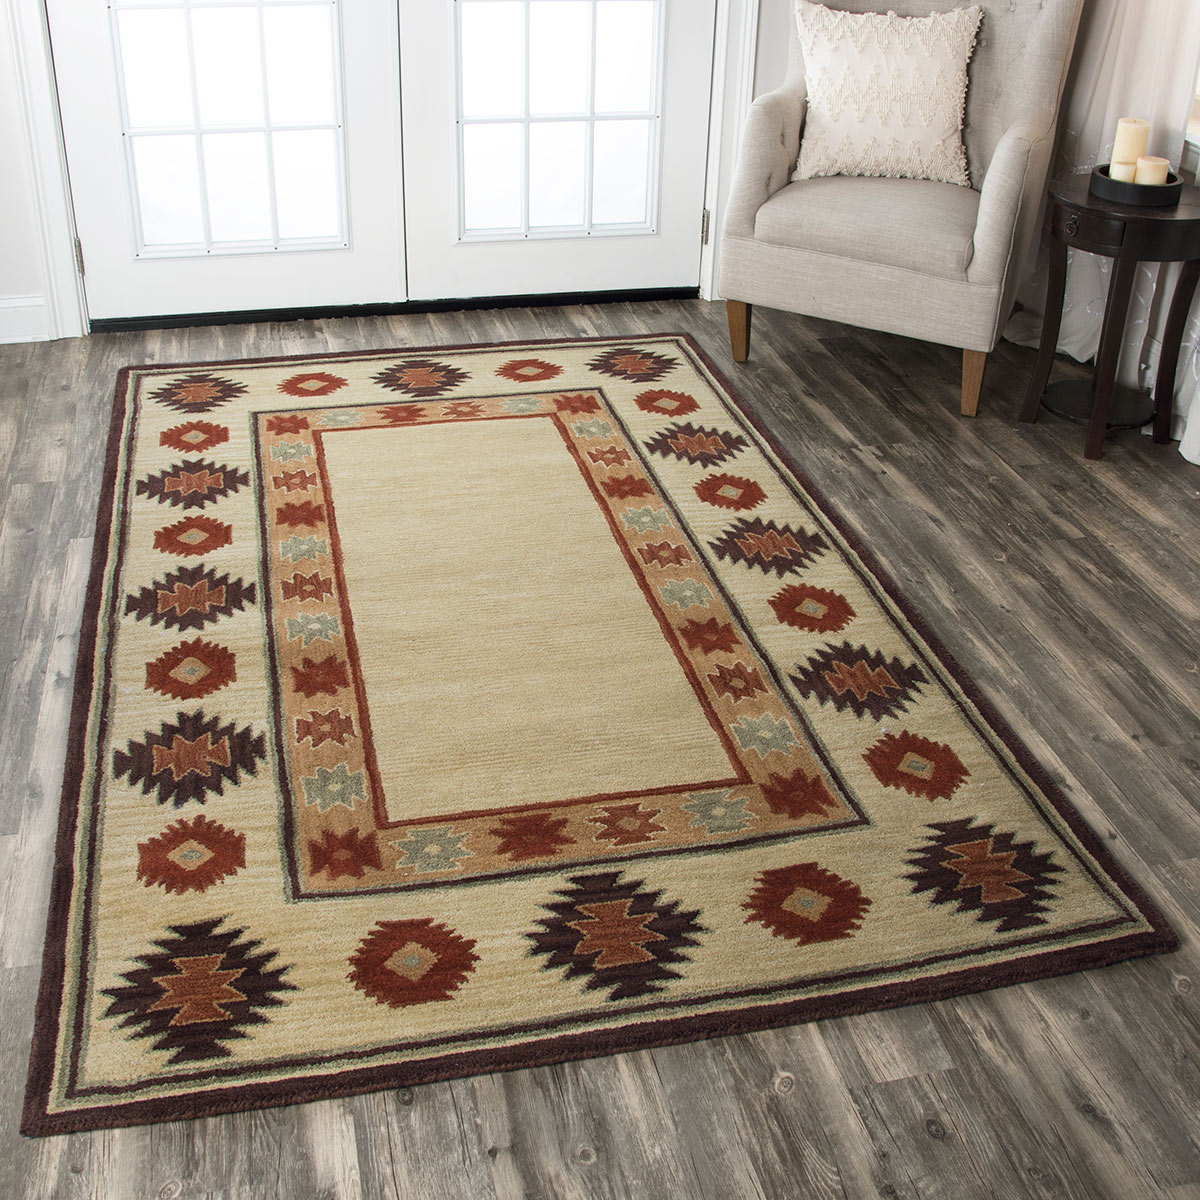 Zion Canyon Rug - 8ft. Round